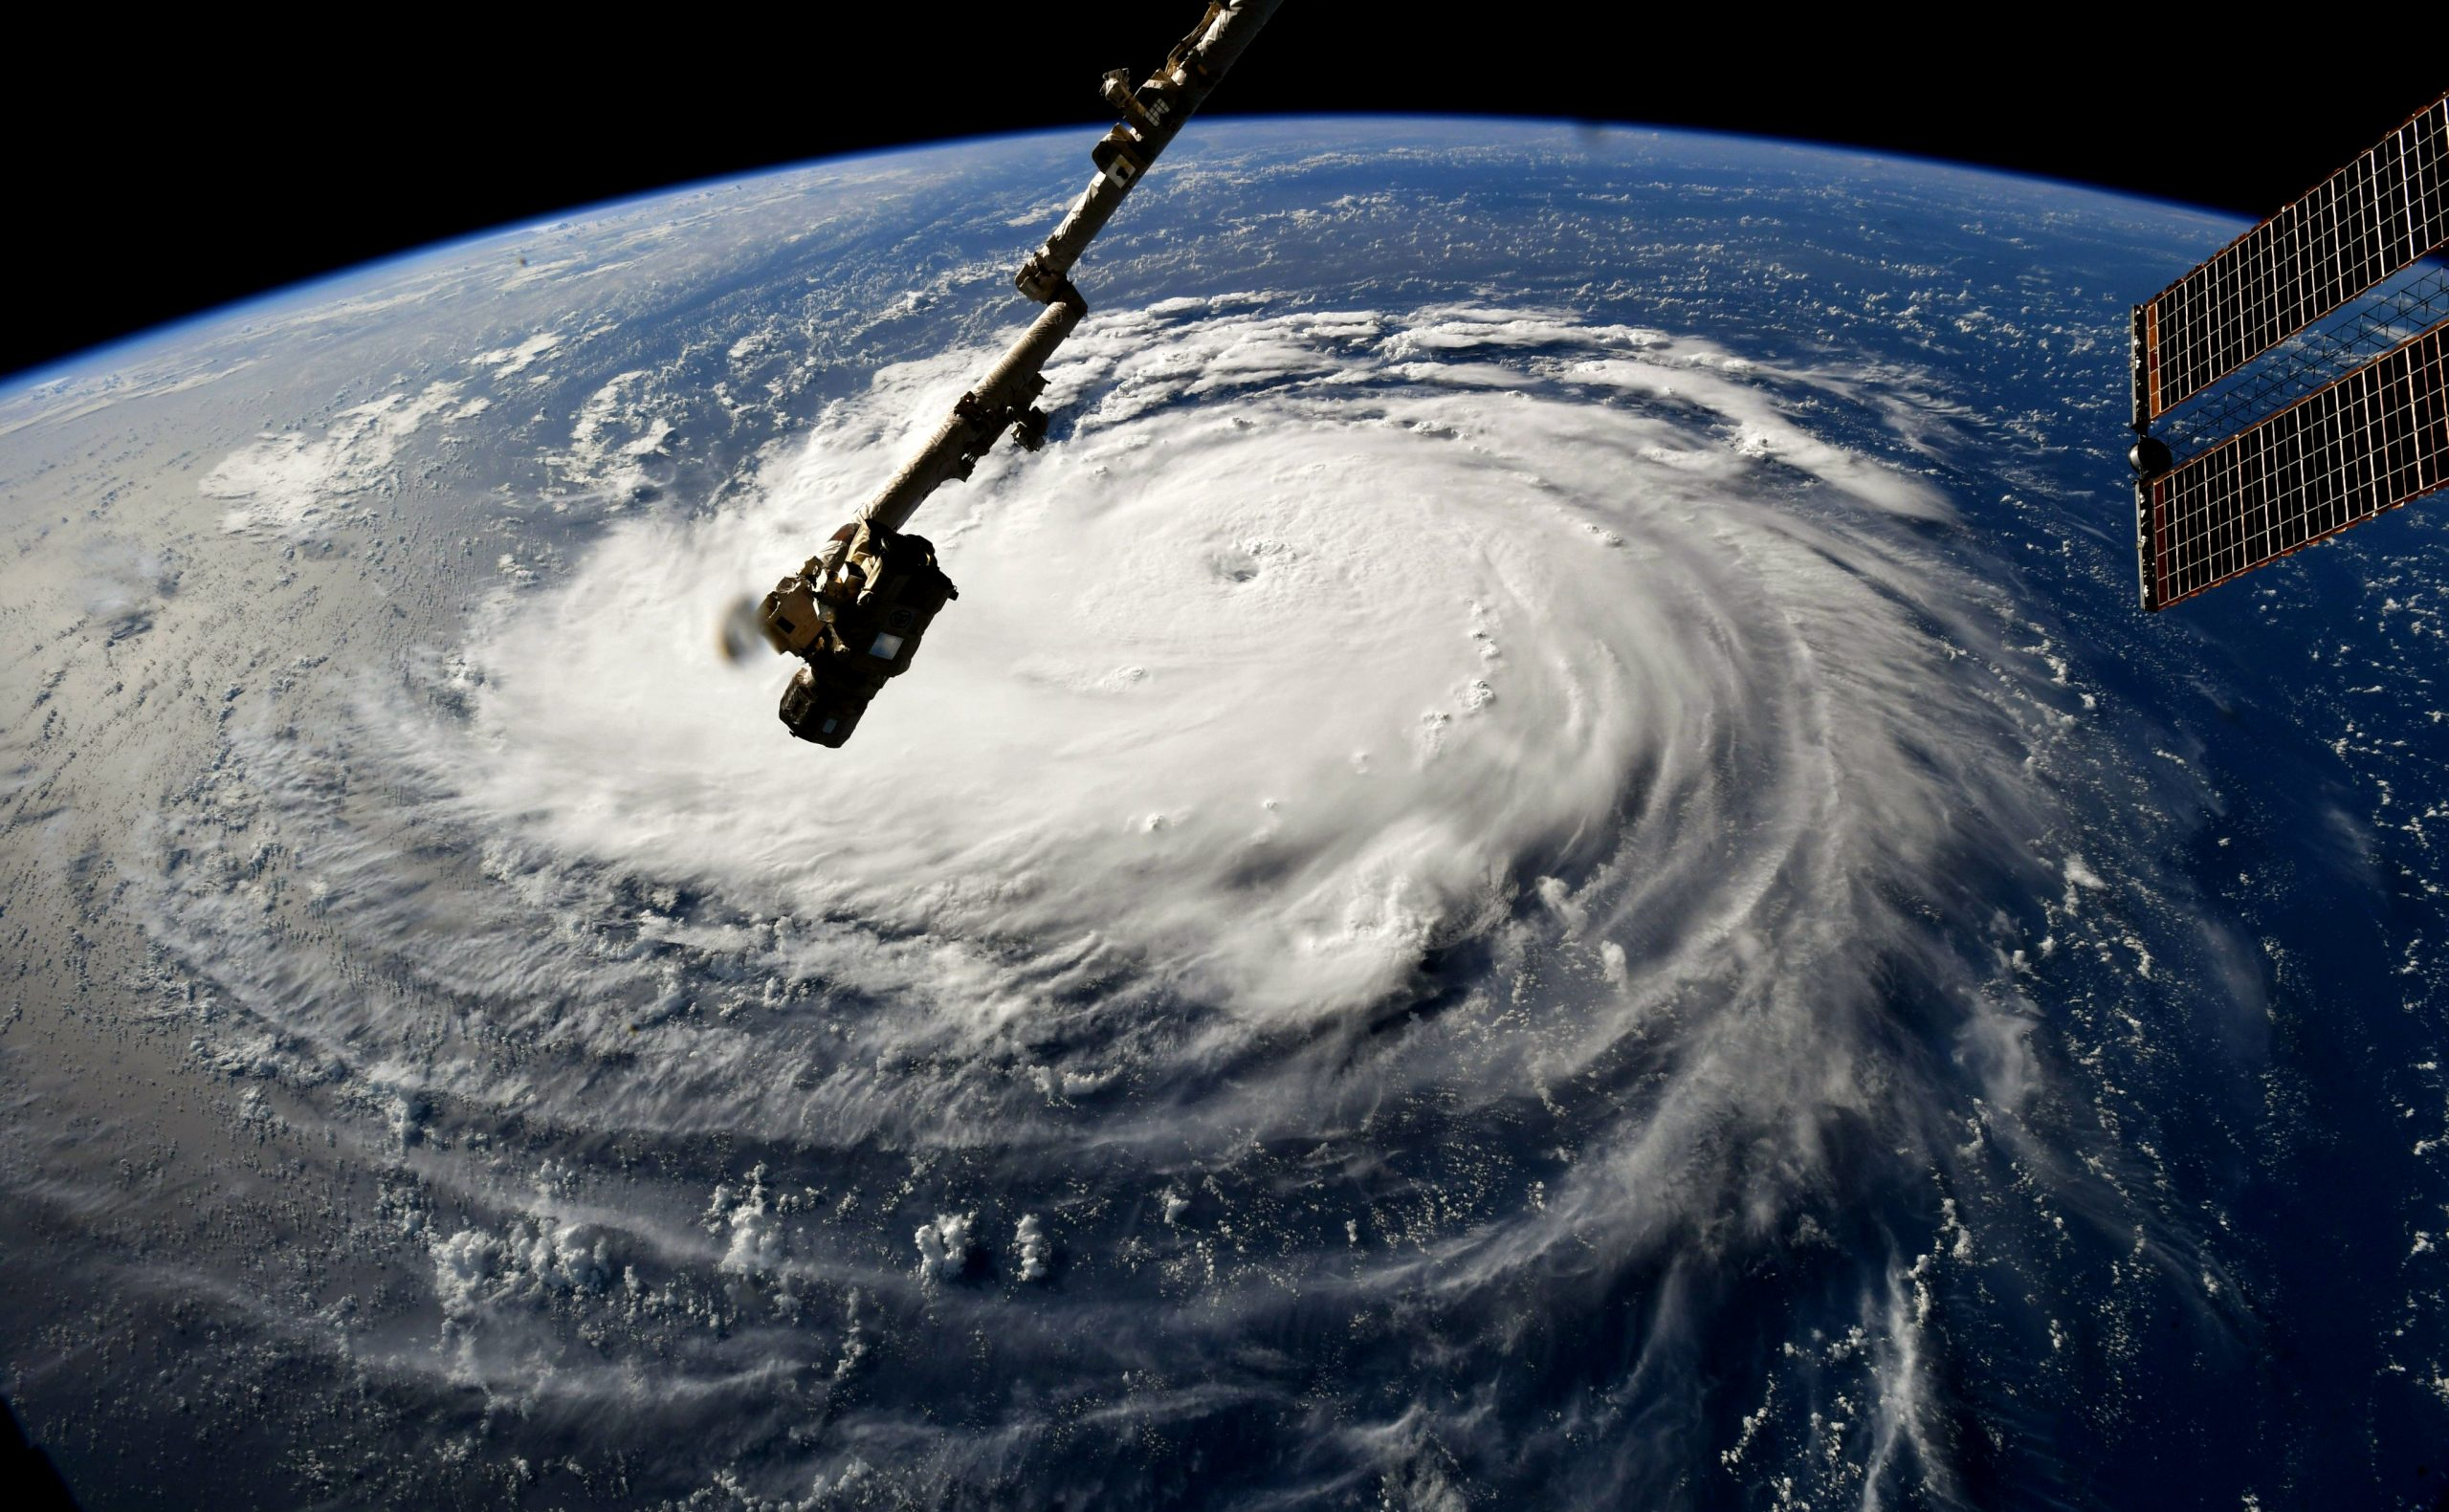 Astronauts took this stunning image of Hurricane Florence from the Space Station